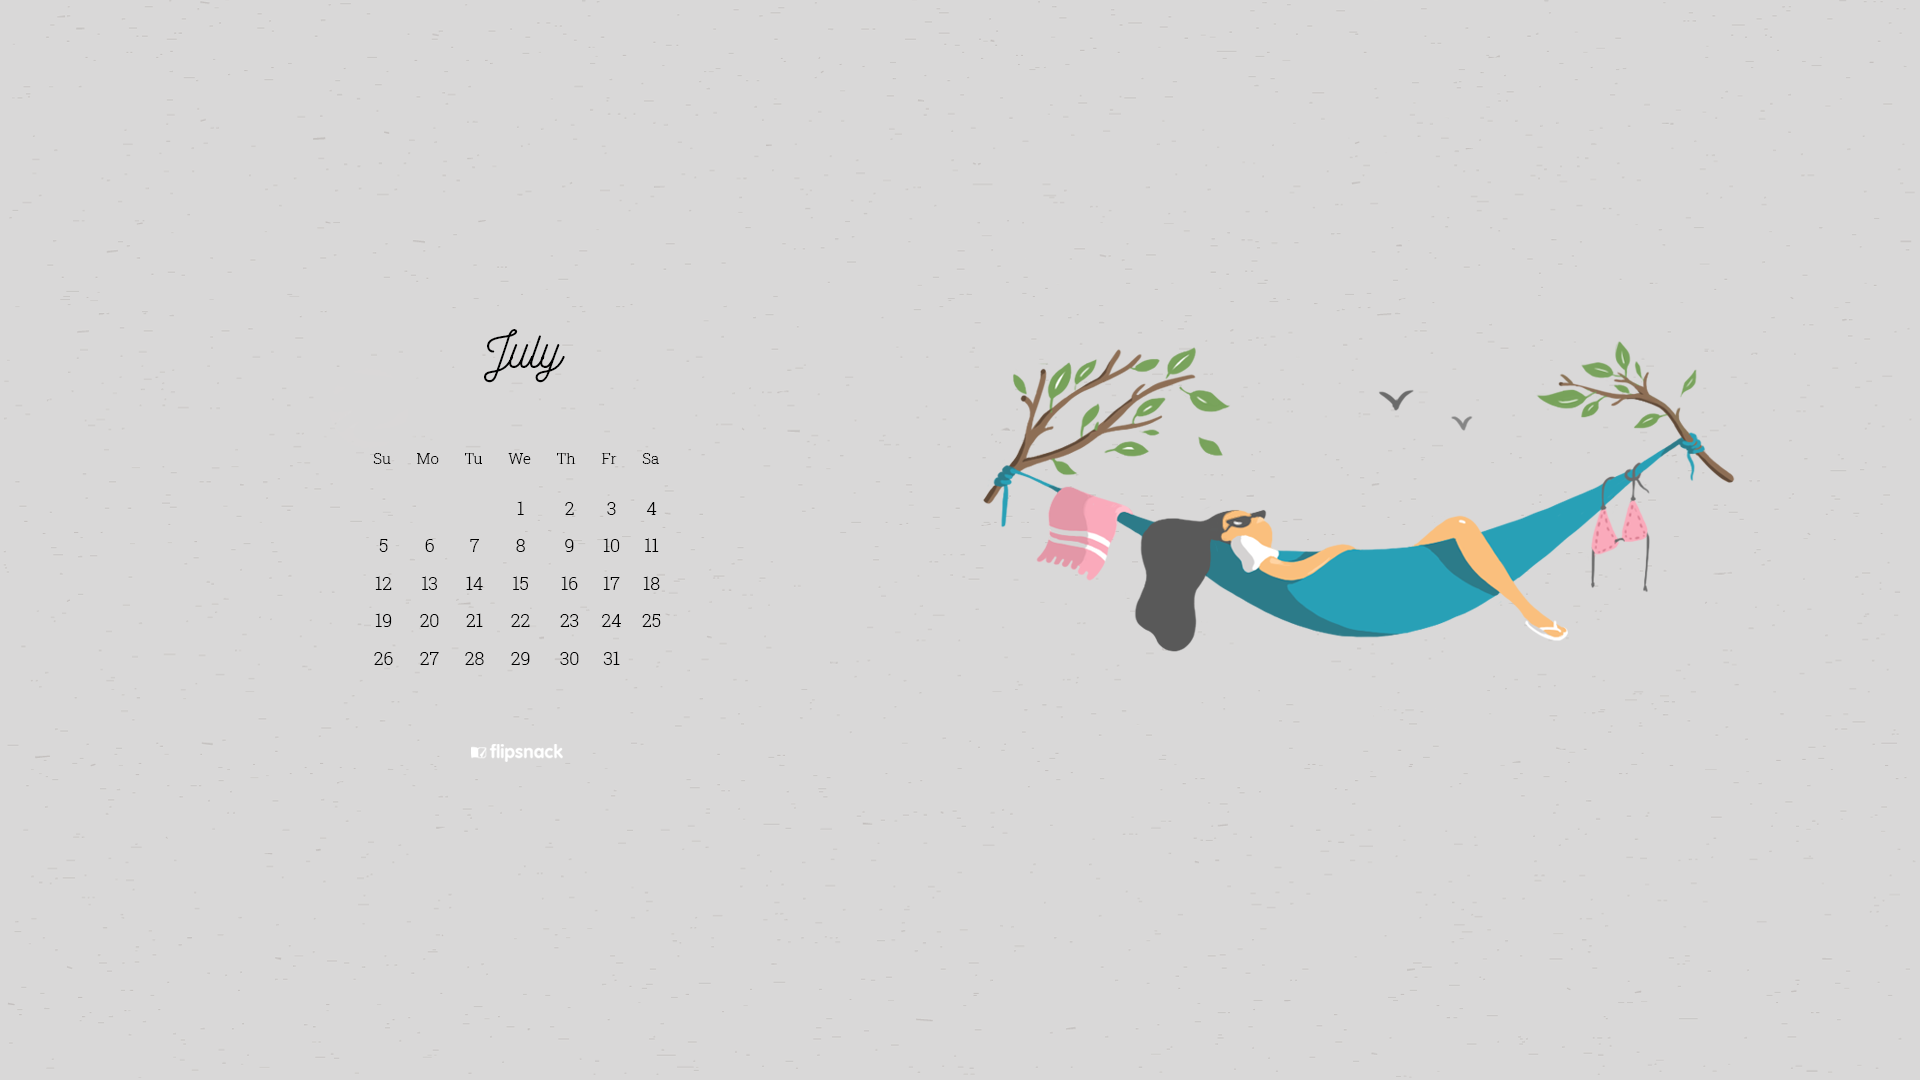 Free 2020 wallpapers calendars